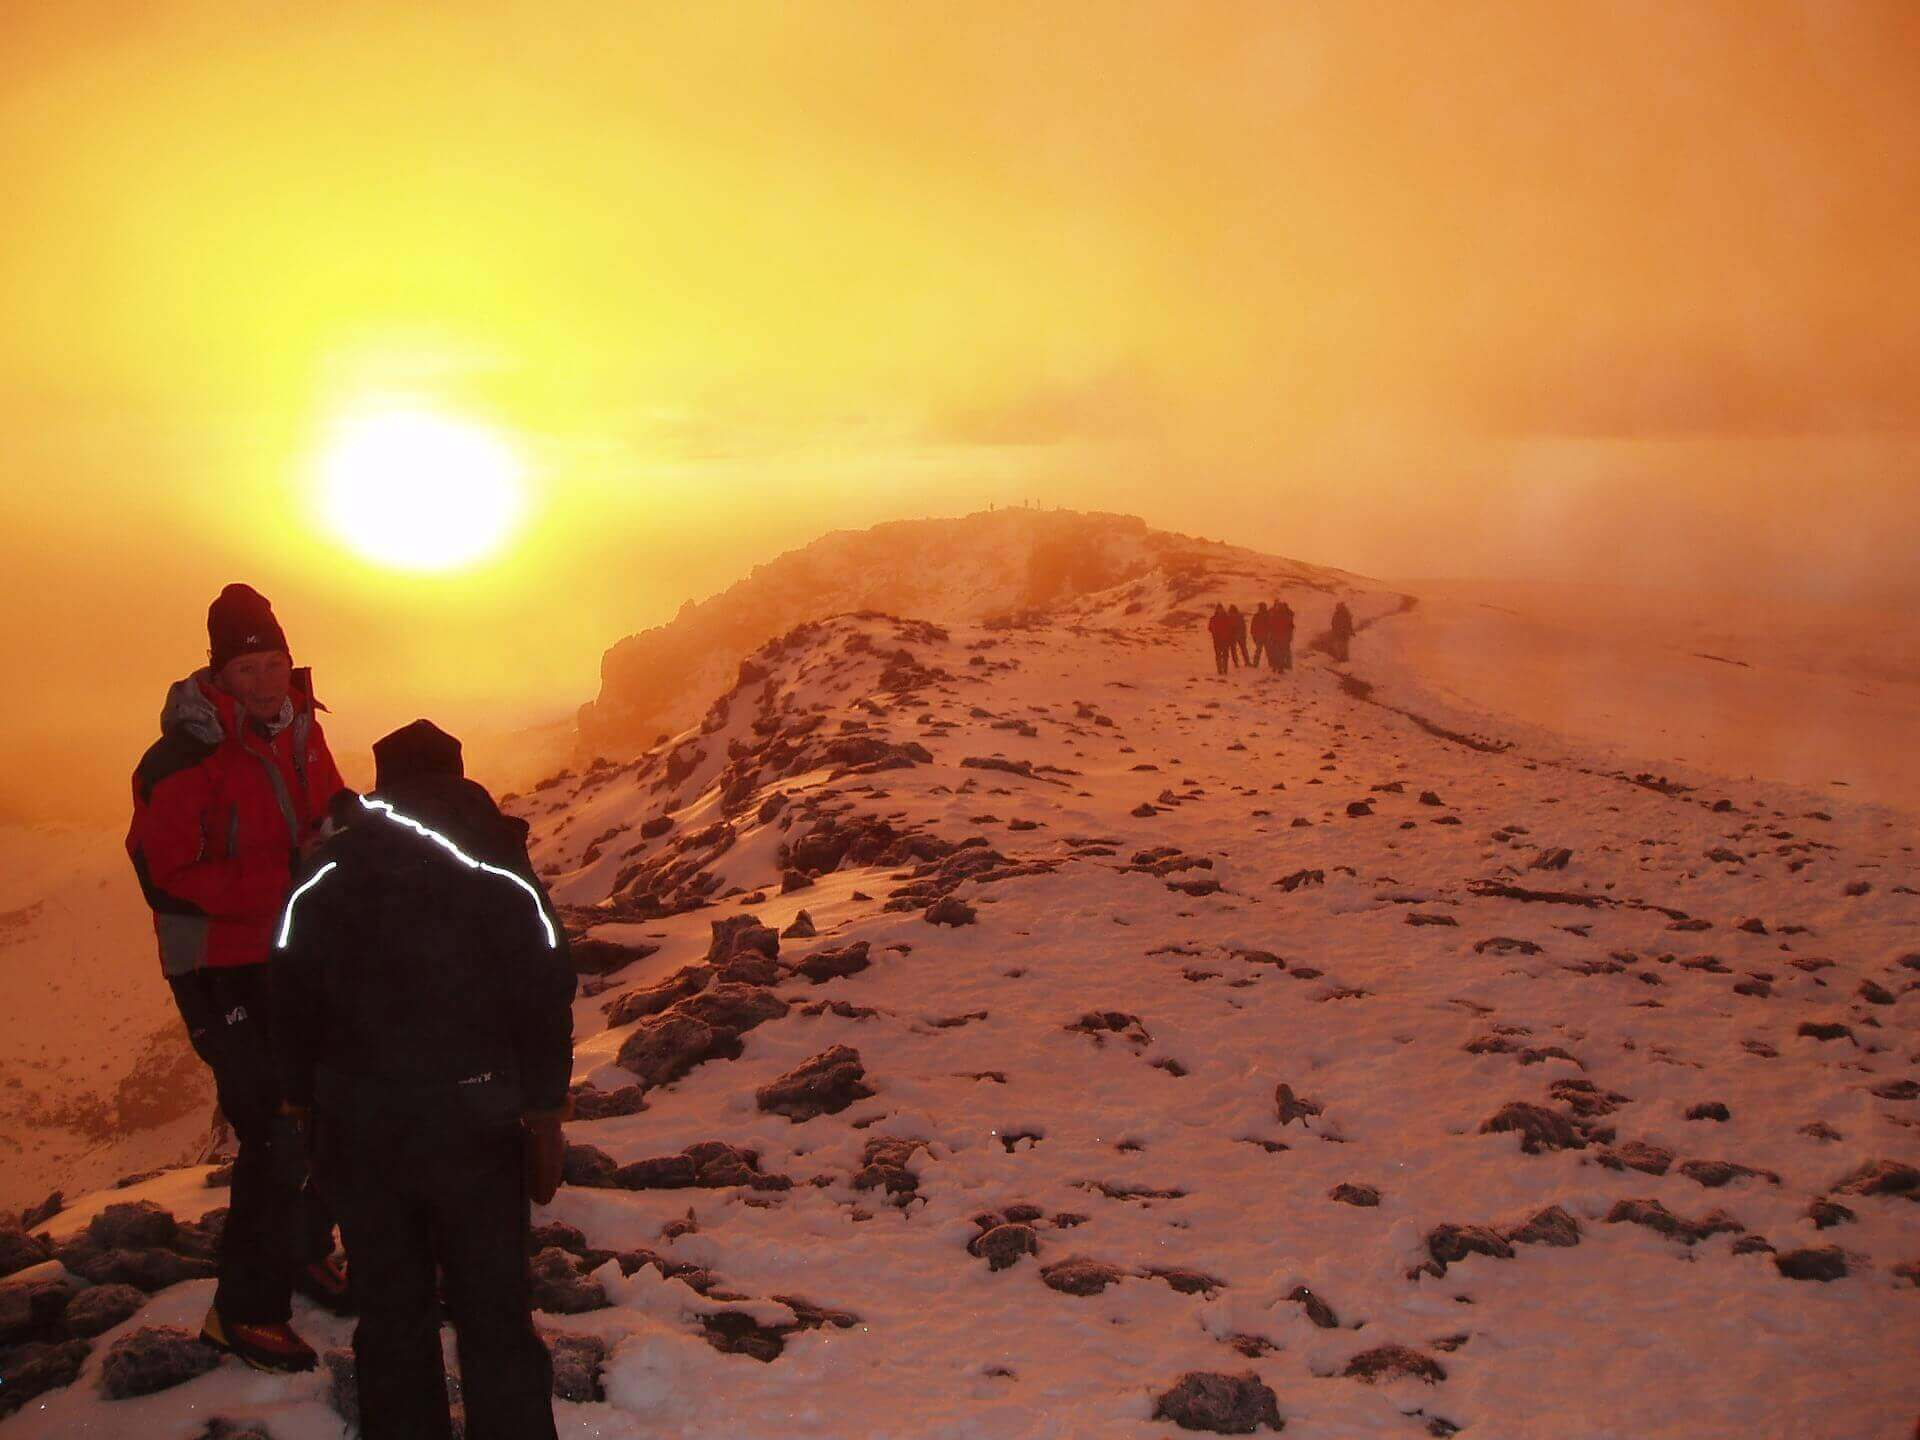 Mount Kilimanjaro trekking to the summit at sunrise